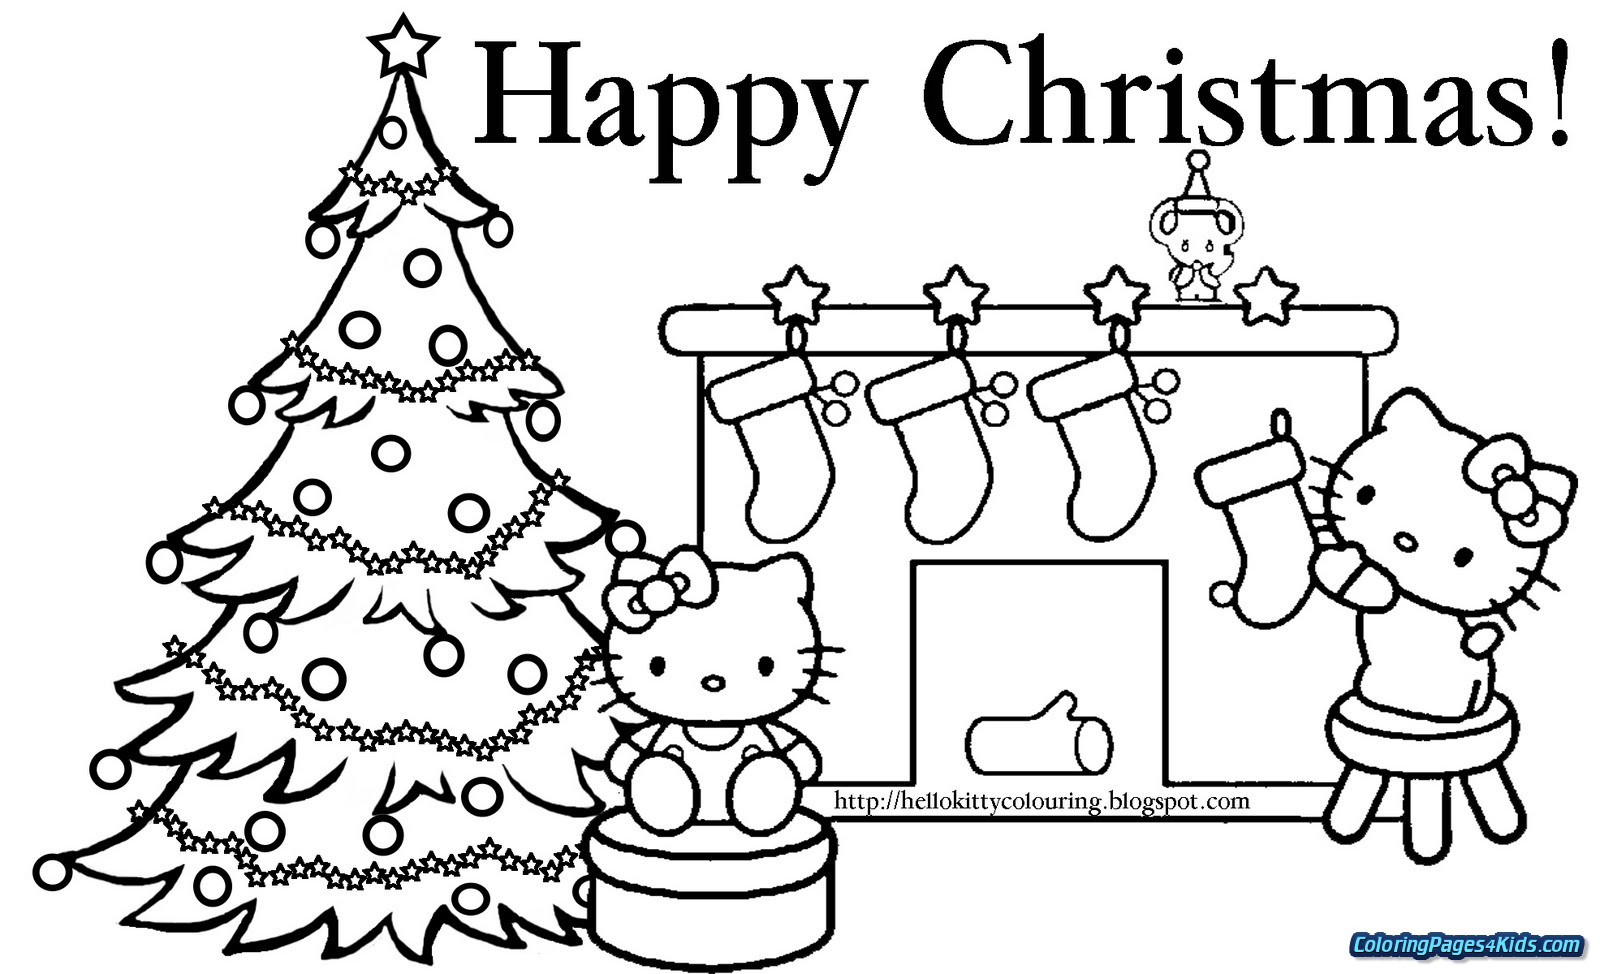 Christmas Cat Coloring Pages With Hello Kitty For Kids